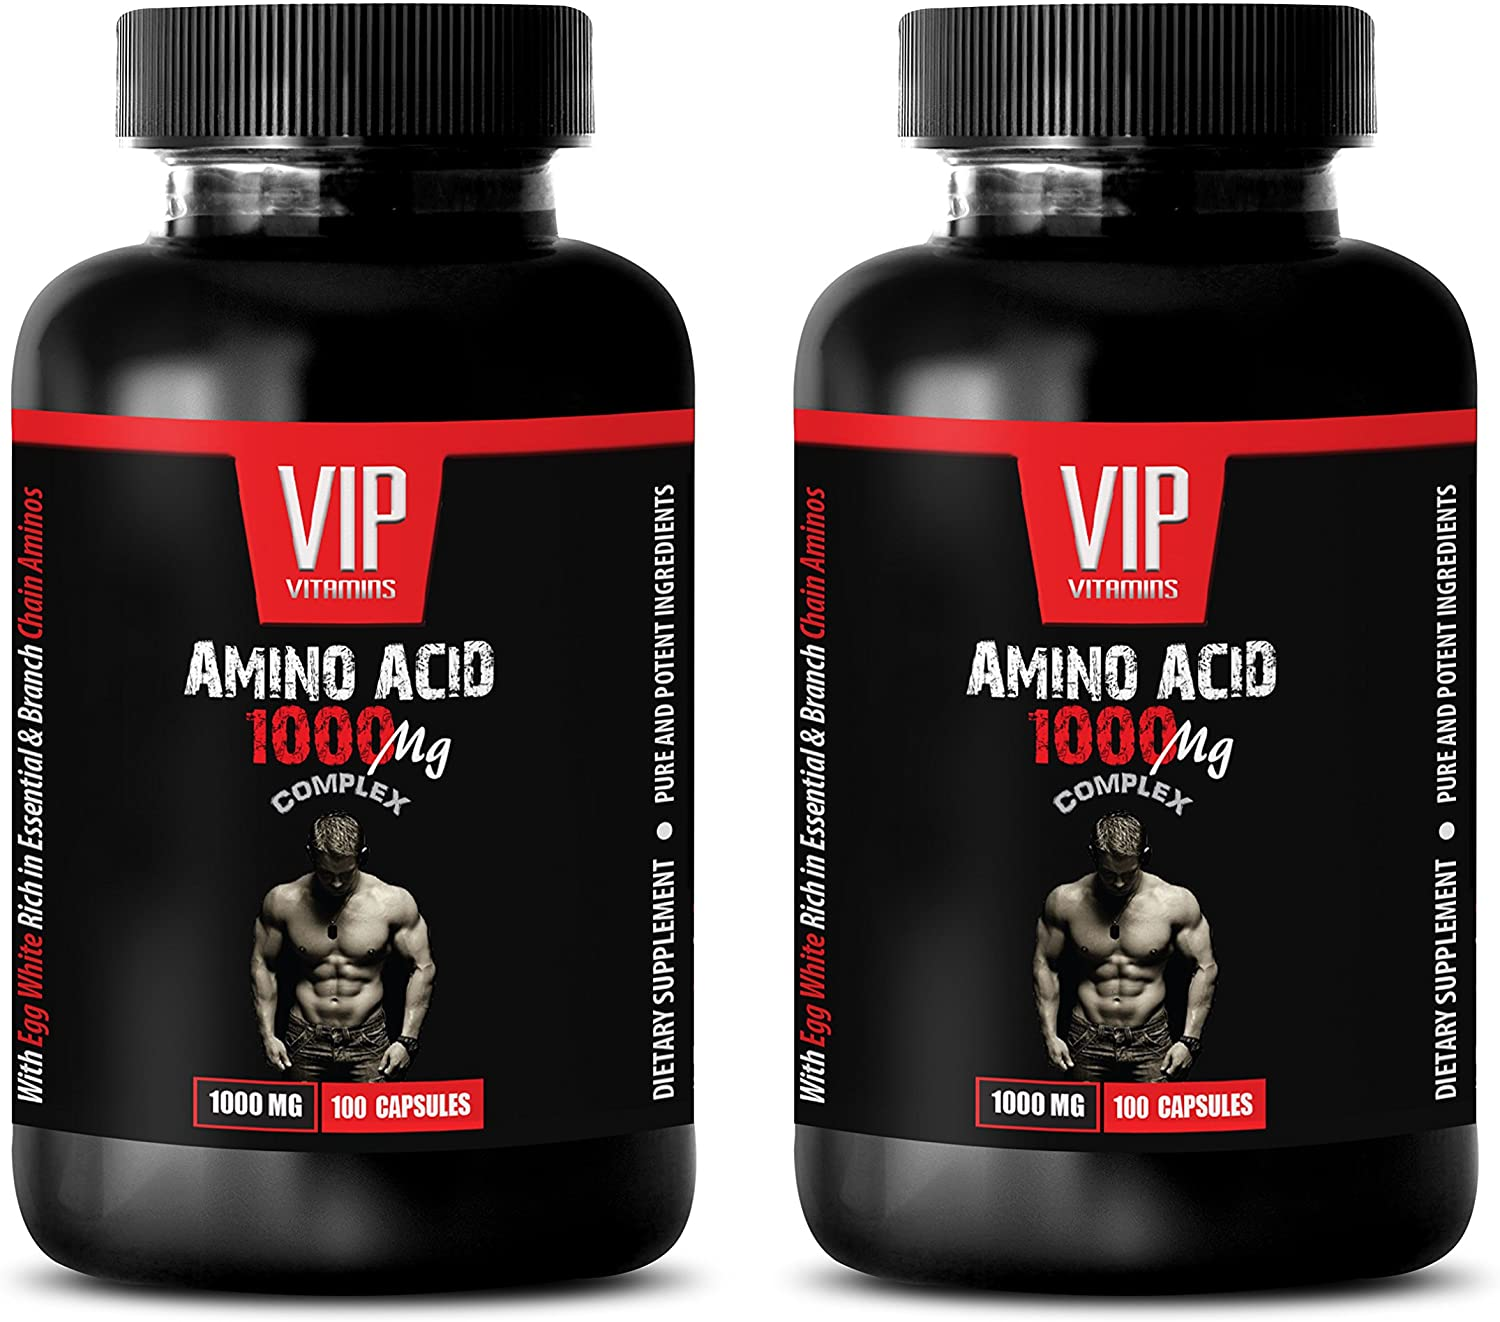 Workout Supplements for Men Muscle - Amino Acid 1000 MG Complex - l-tyrosine Bulk Supplements - 2 Bottles 200 Capsules